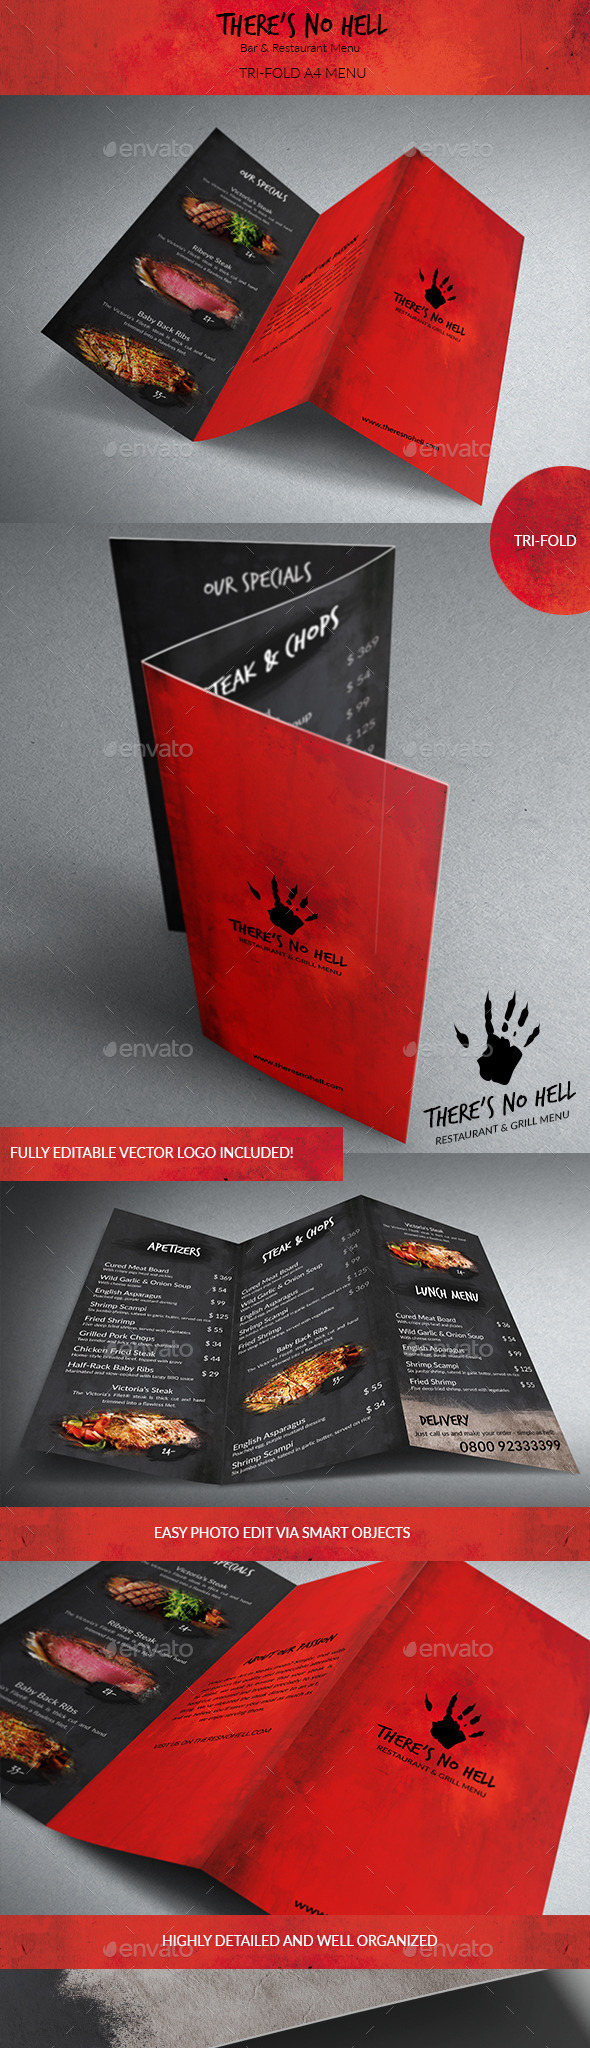 There's no Hell Tri-Fold Menu - Food Menus Print Templates